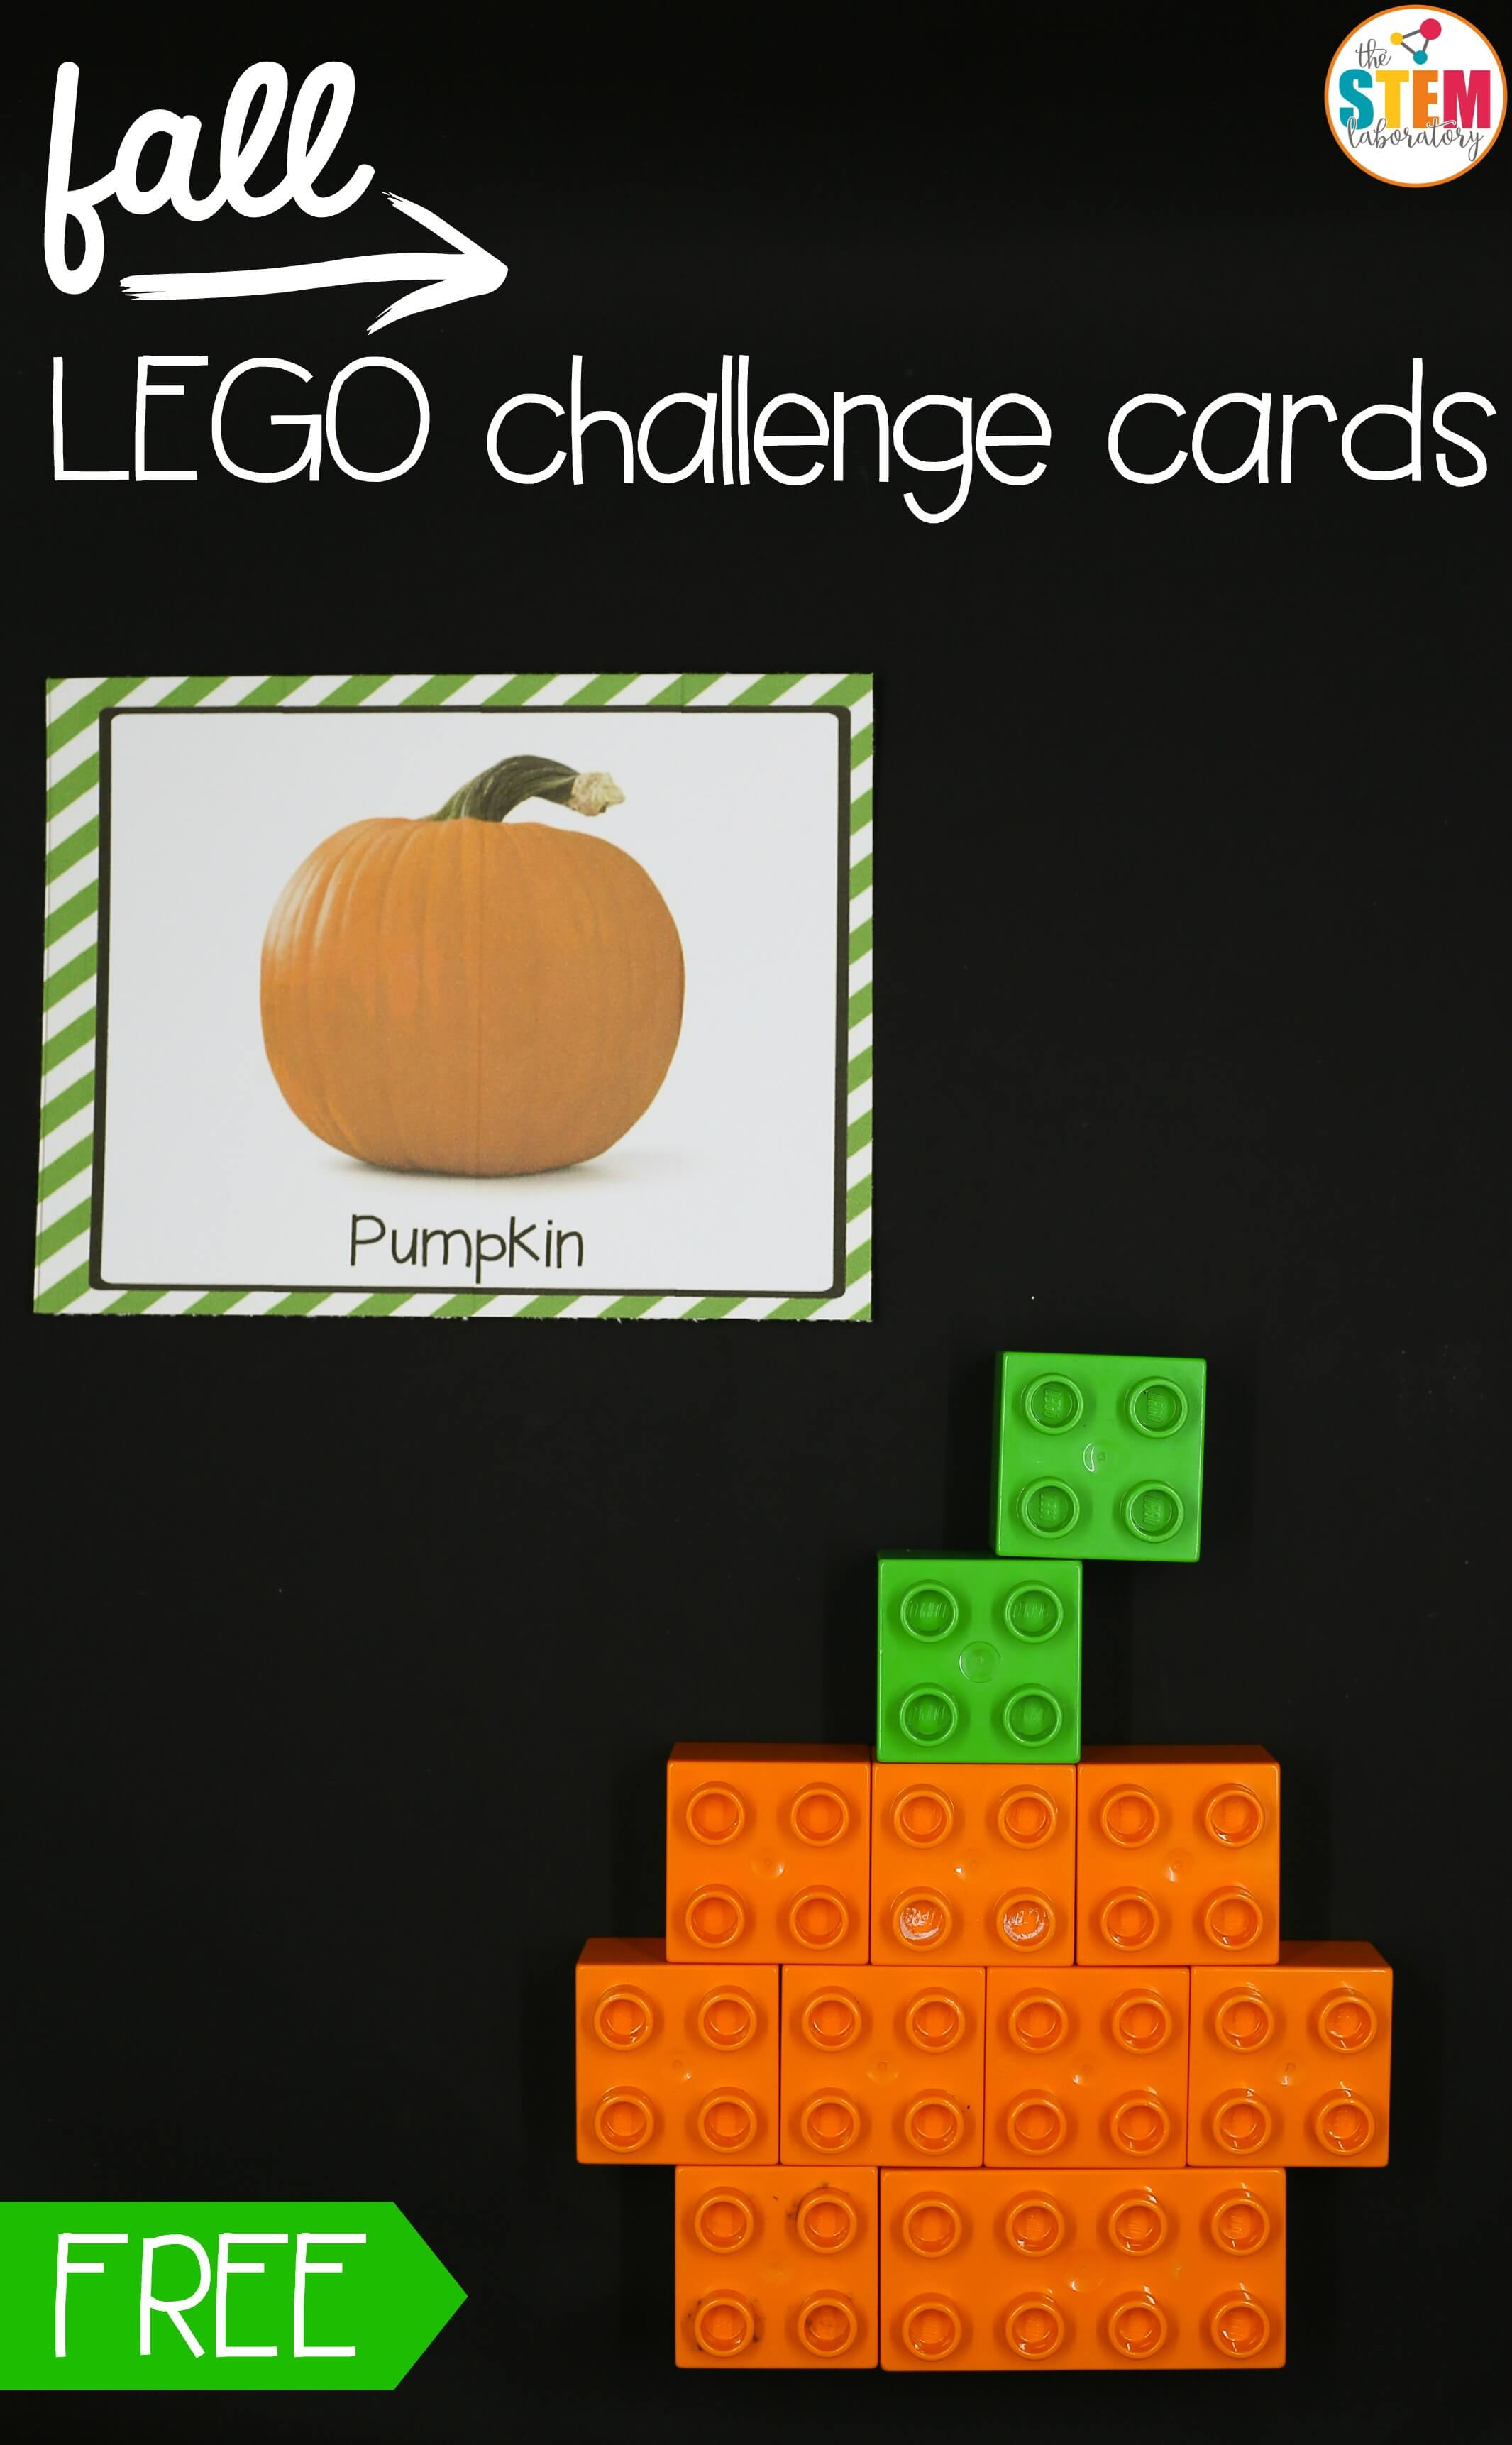 LEGO Challenge Cards - The Stem Laboratory